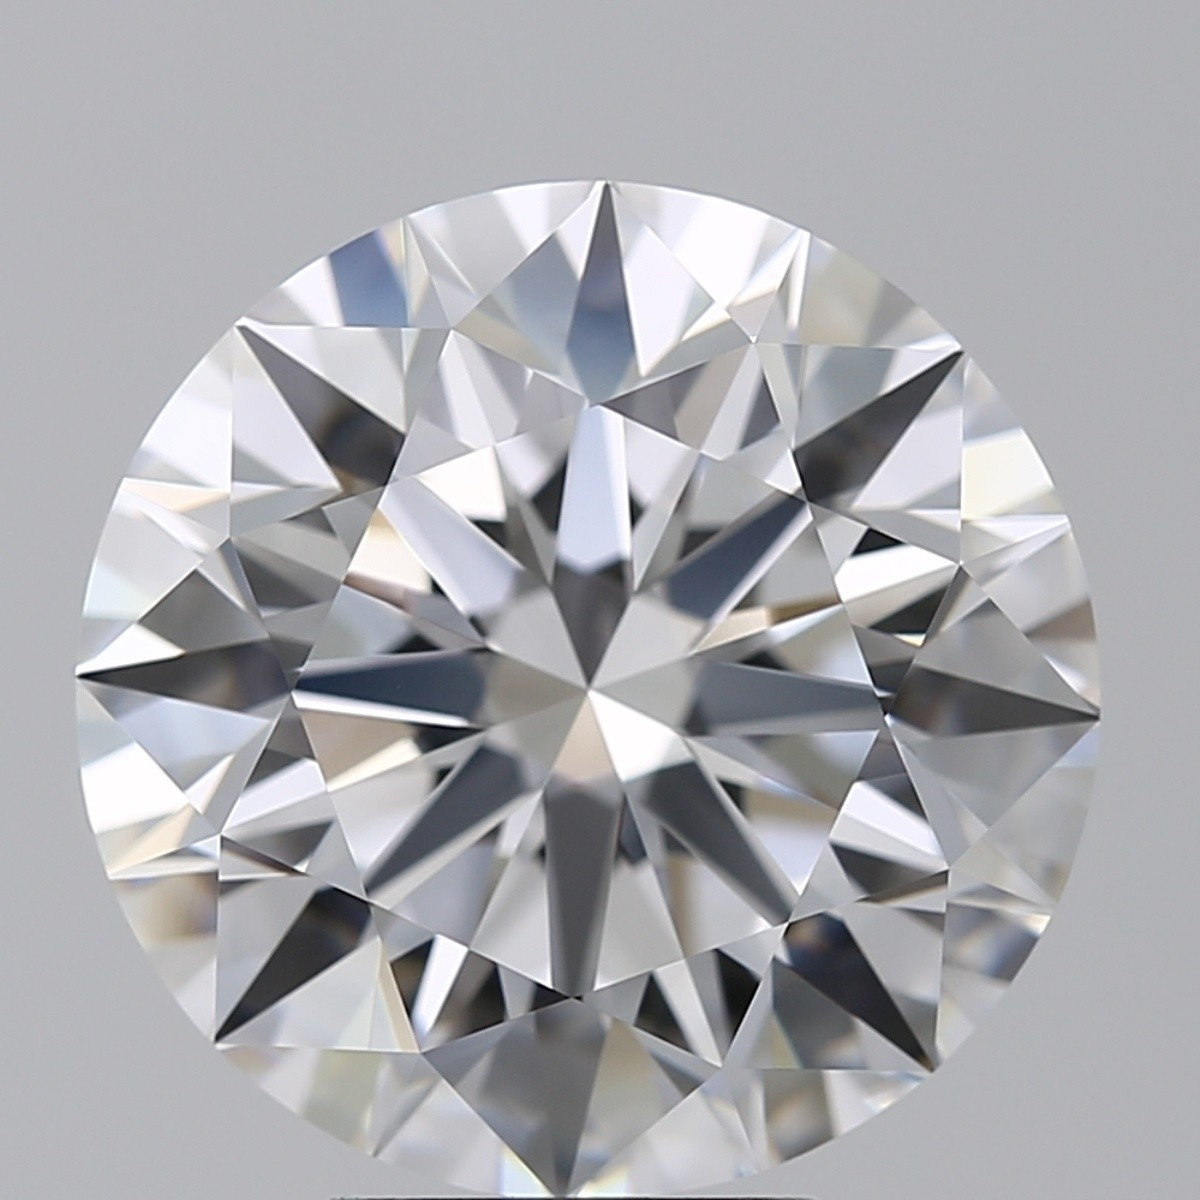 5.46 Carat Round Brilliant Diamond (D/FL)